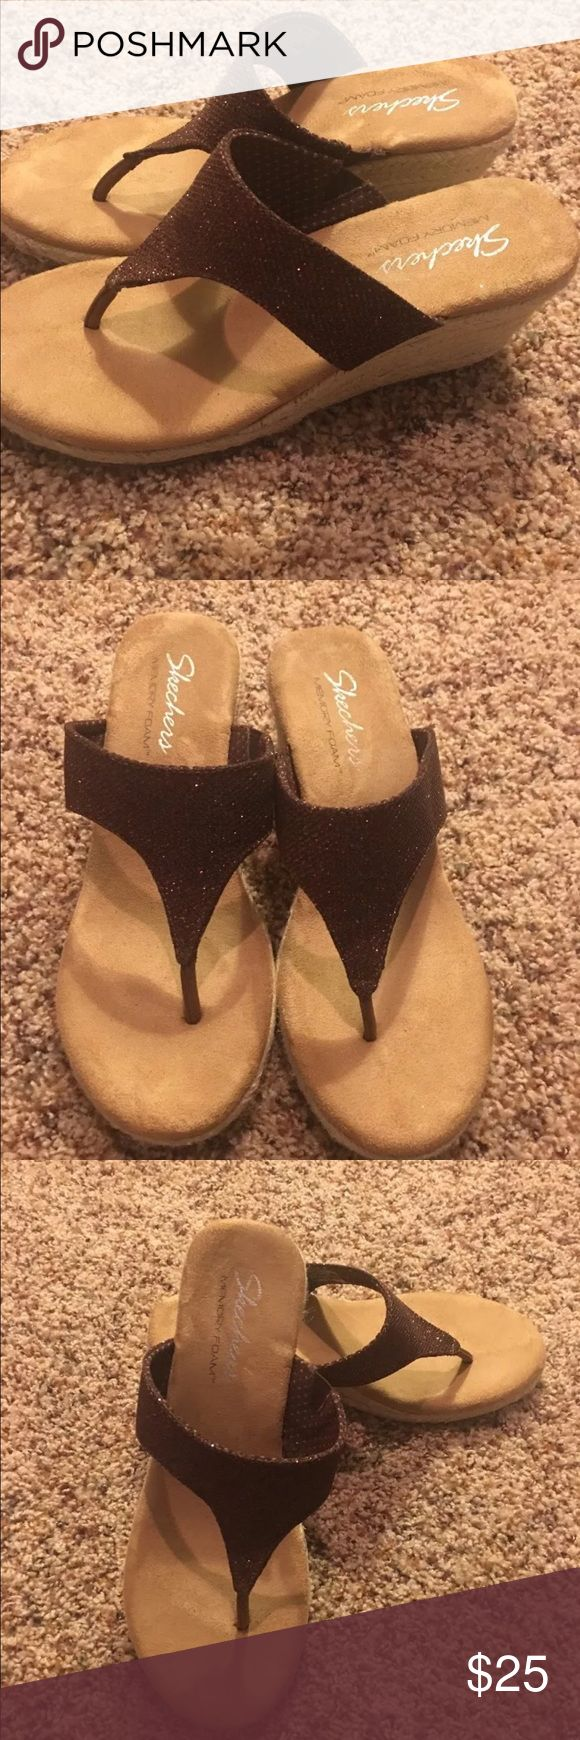 Skechers wedges memory foam Worn once!!! Skechers Shoes Sandals